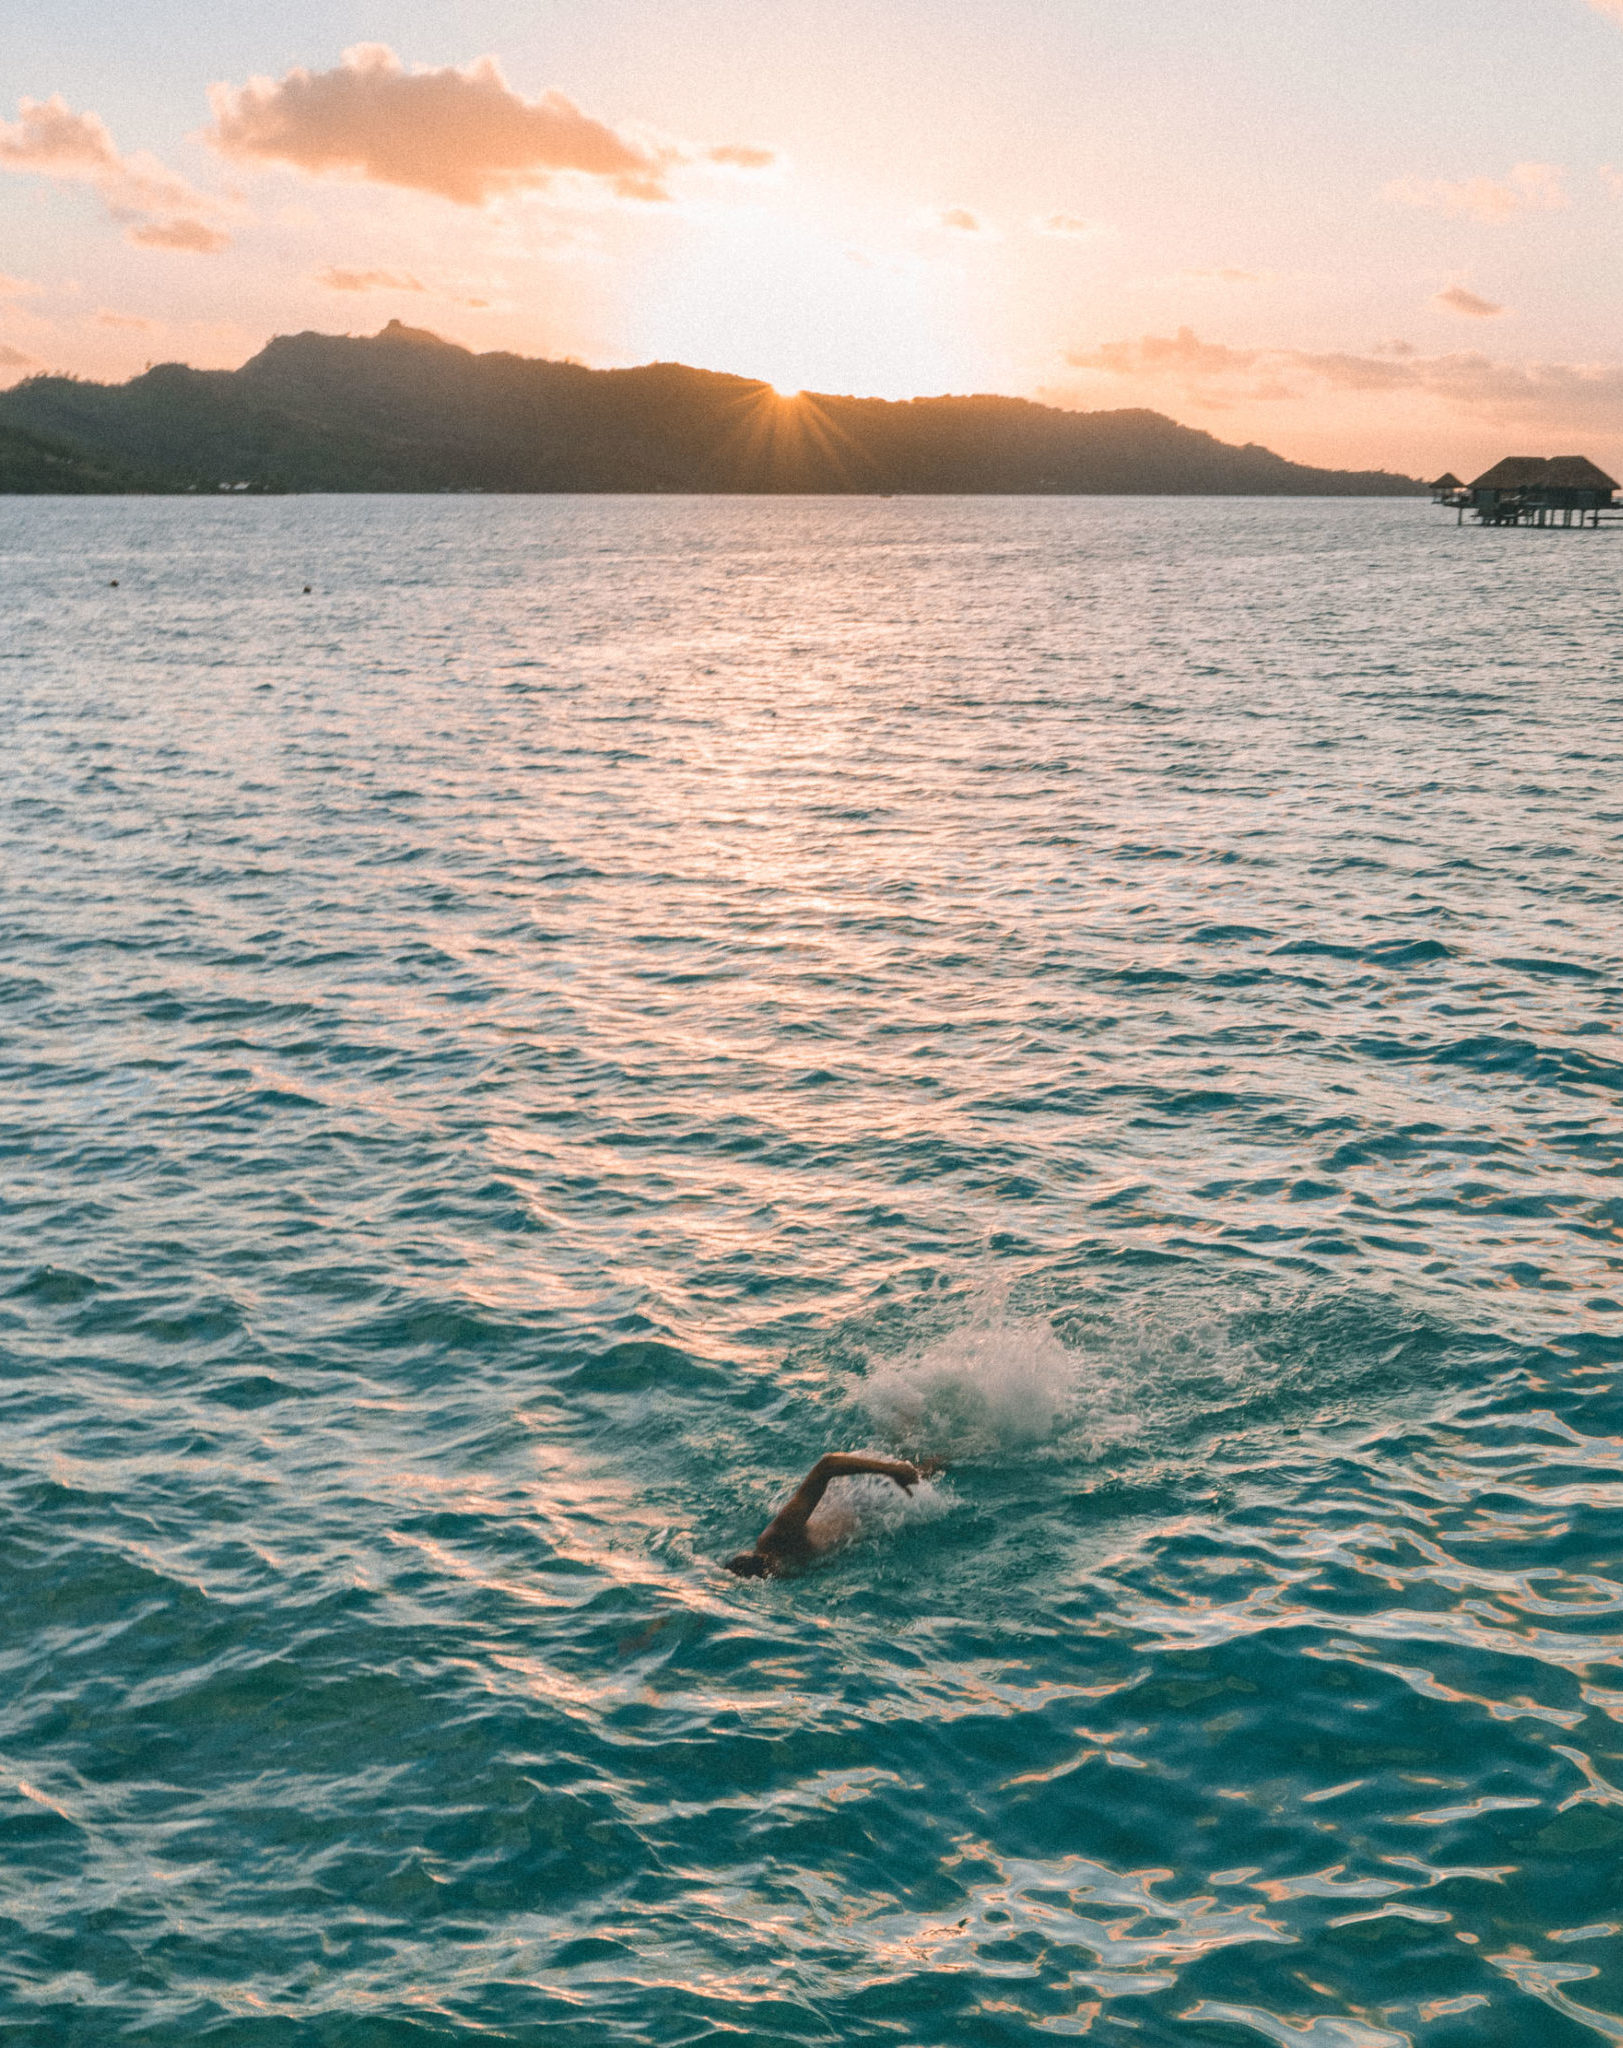 Swimming at sunset from our overwater bungalow at Four Seasons Bora Bora for our honeymoon via @finduslost